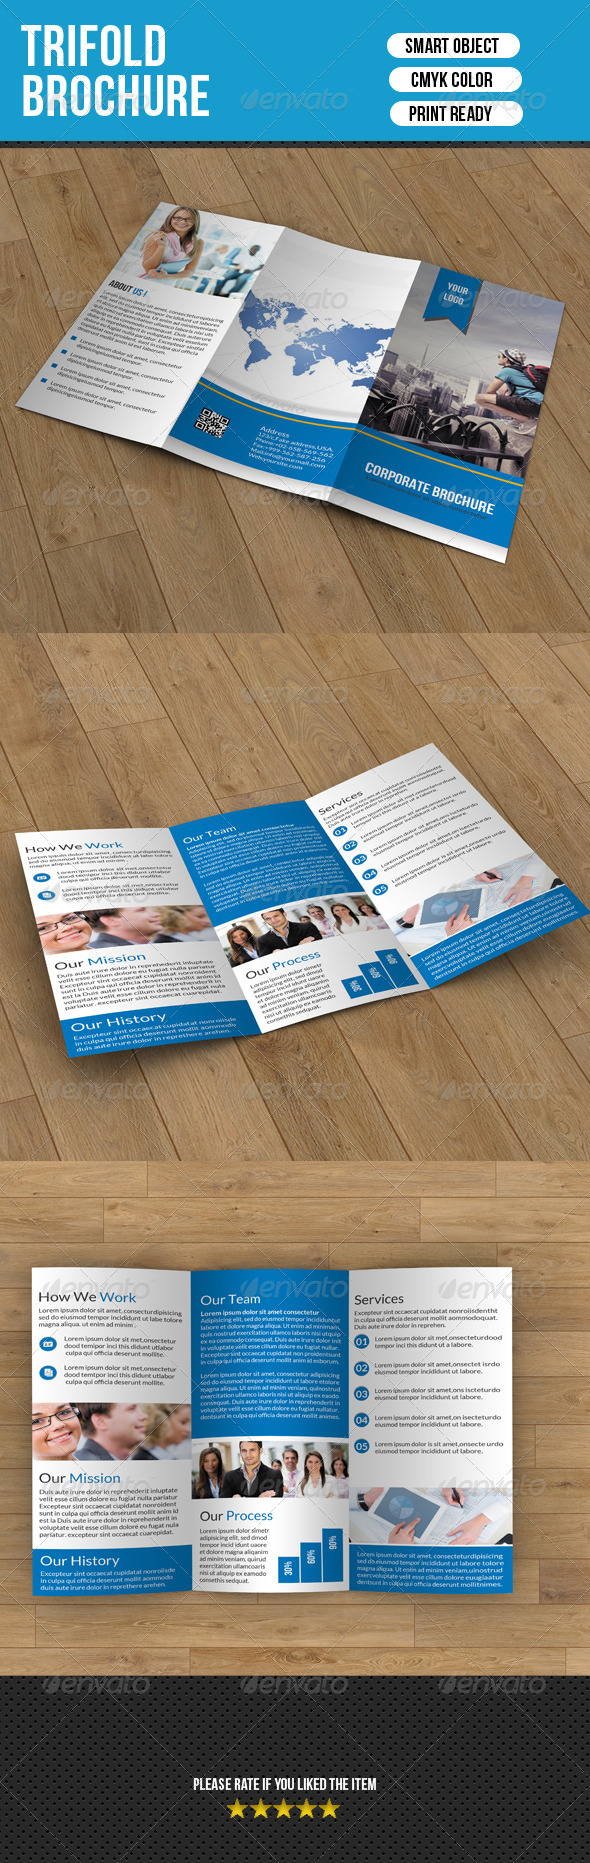 Trifold Brochure- Business